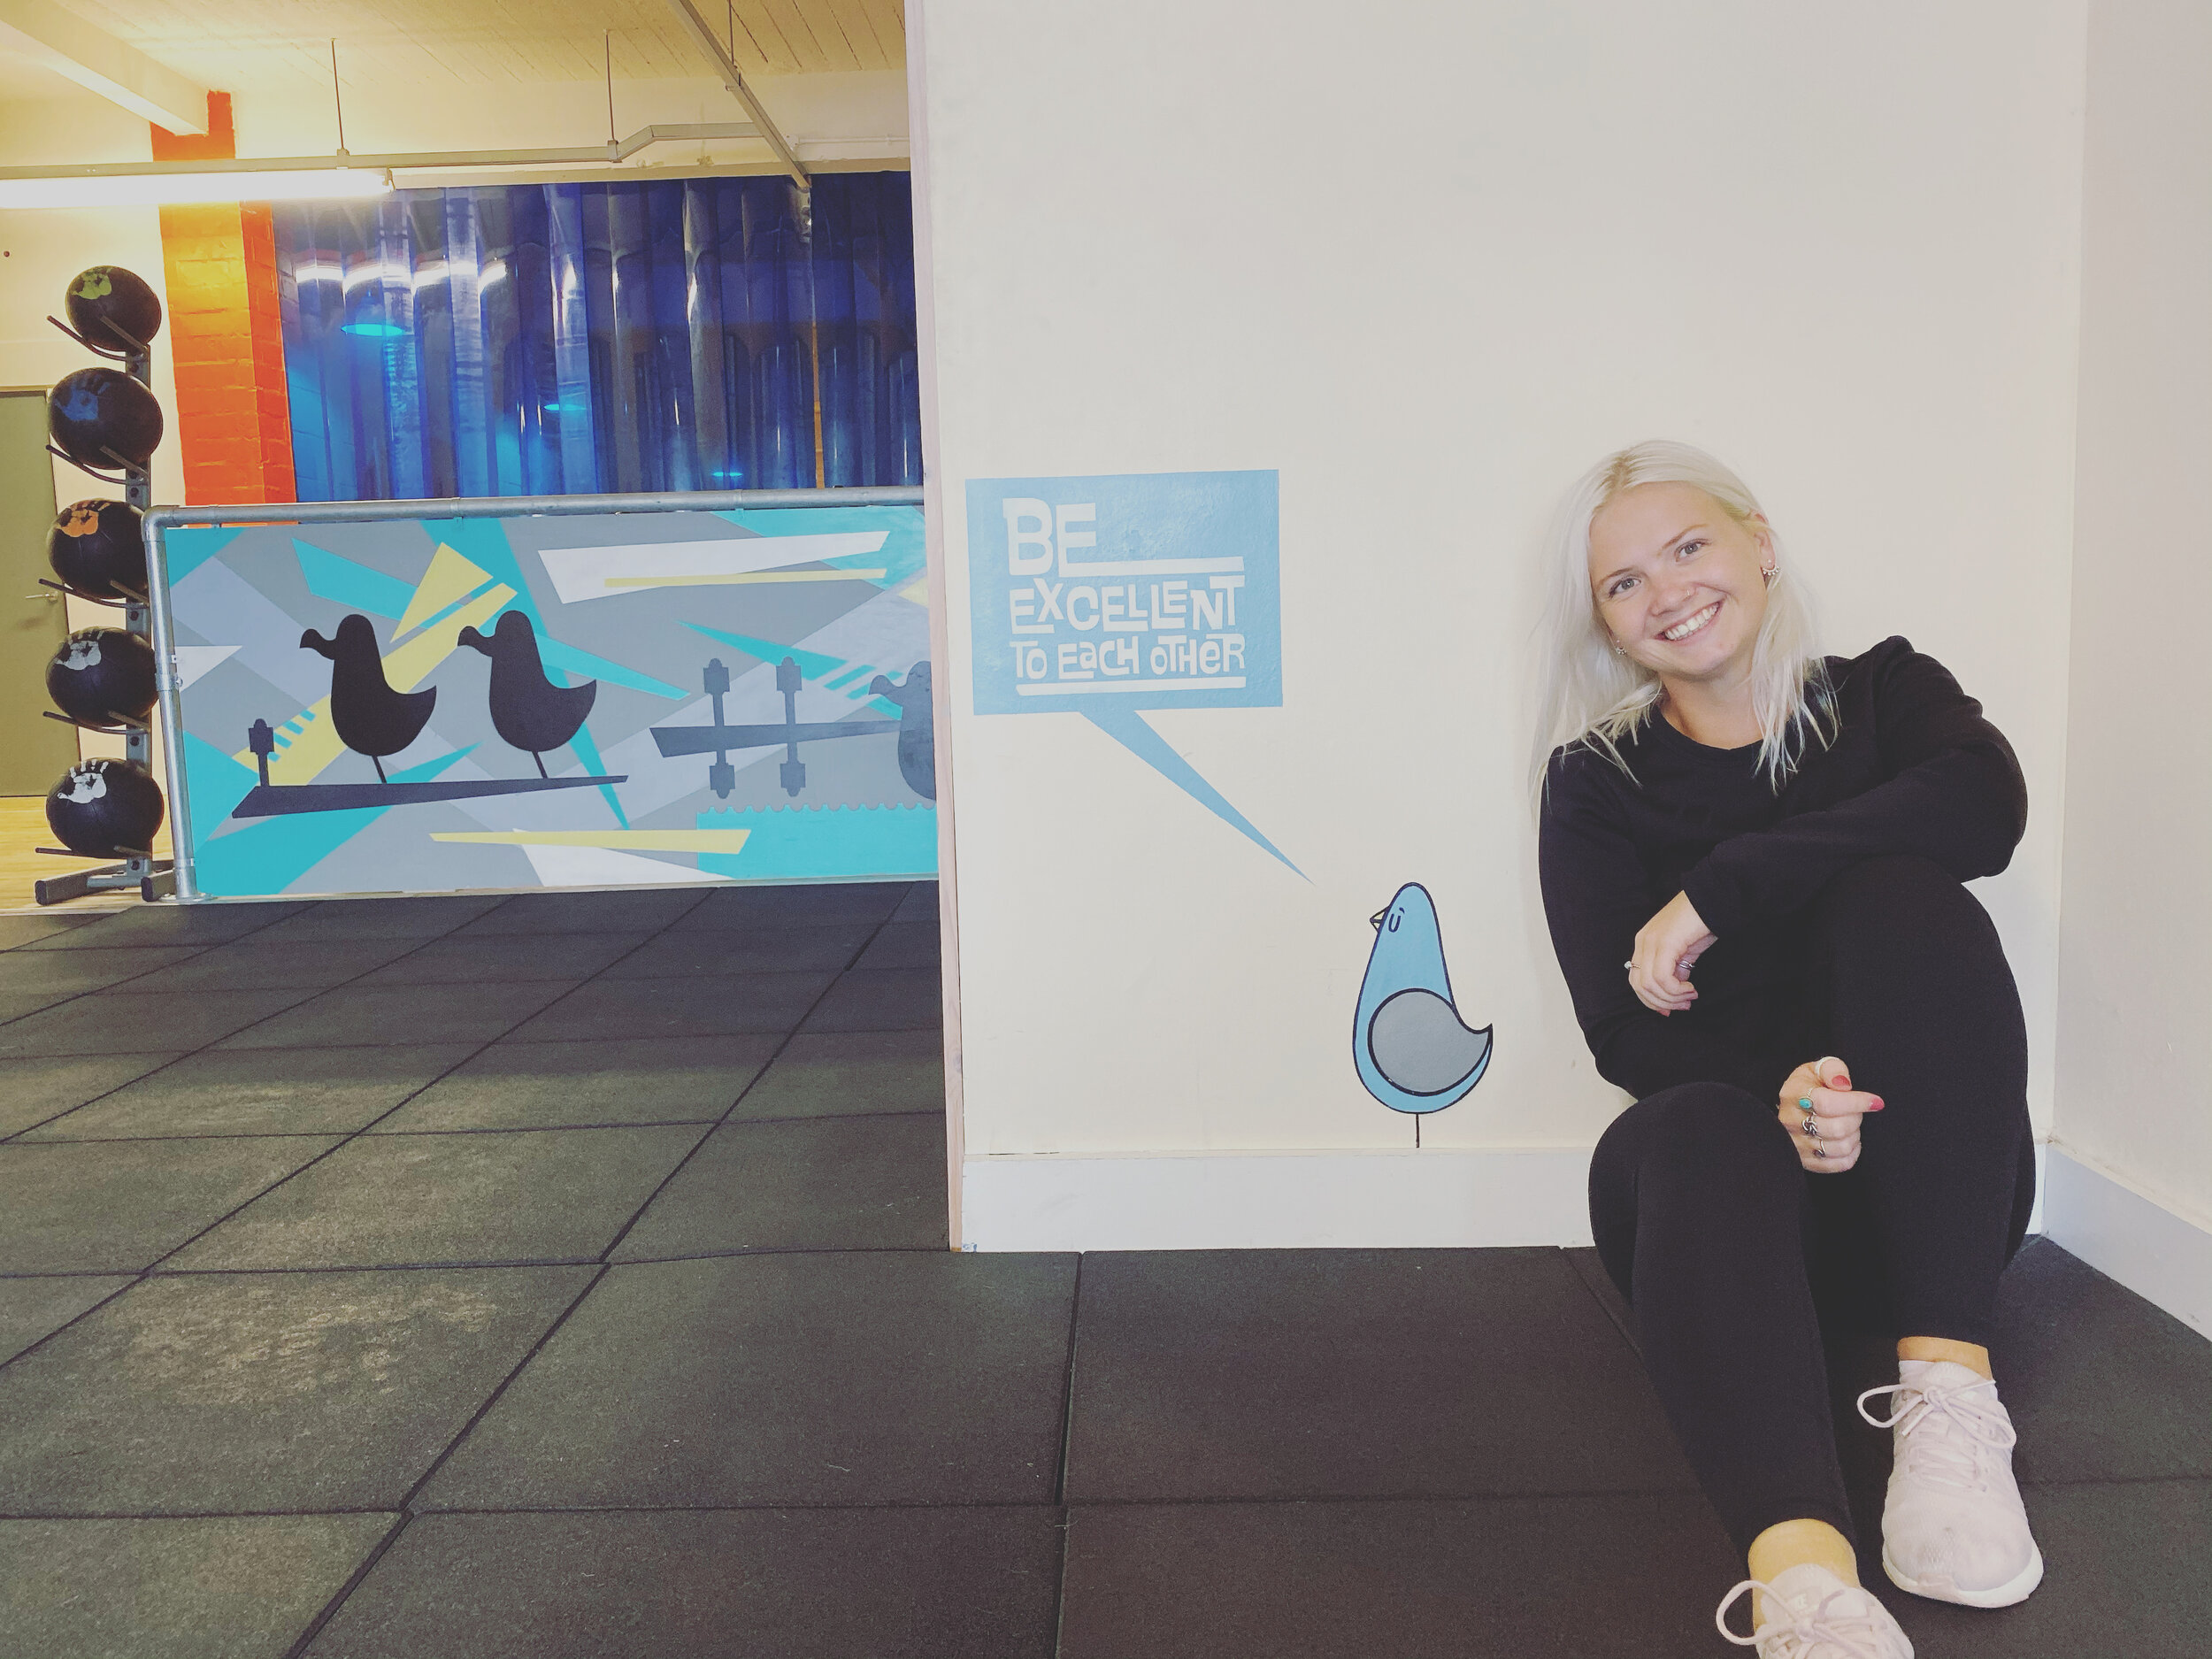 Personal Trainer and Fitness Instructor, Georgie